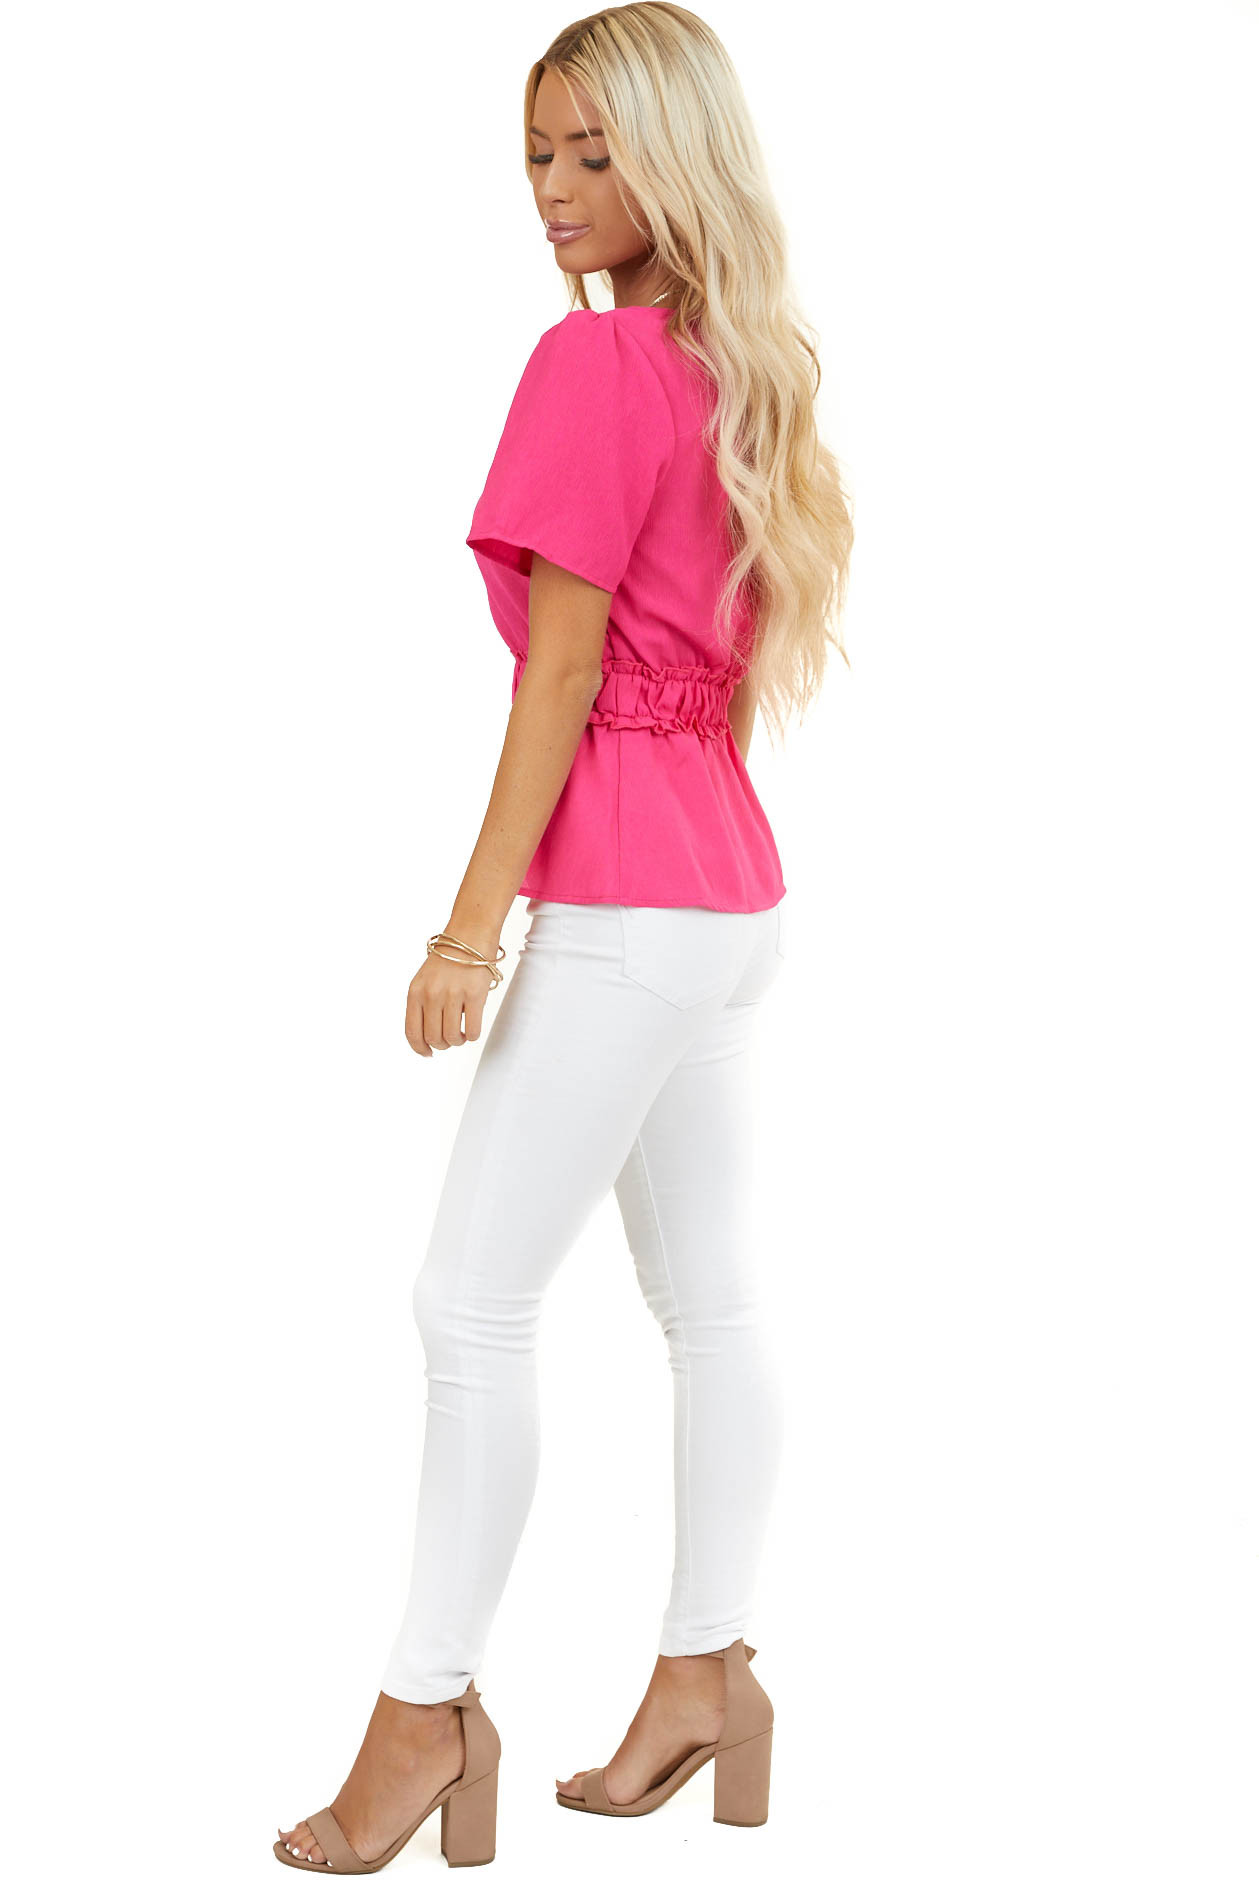 Hot Pink V Neck Button Up Peplum Blouse with Ruffle Details